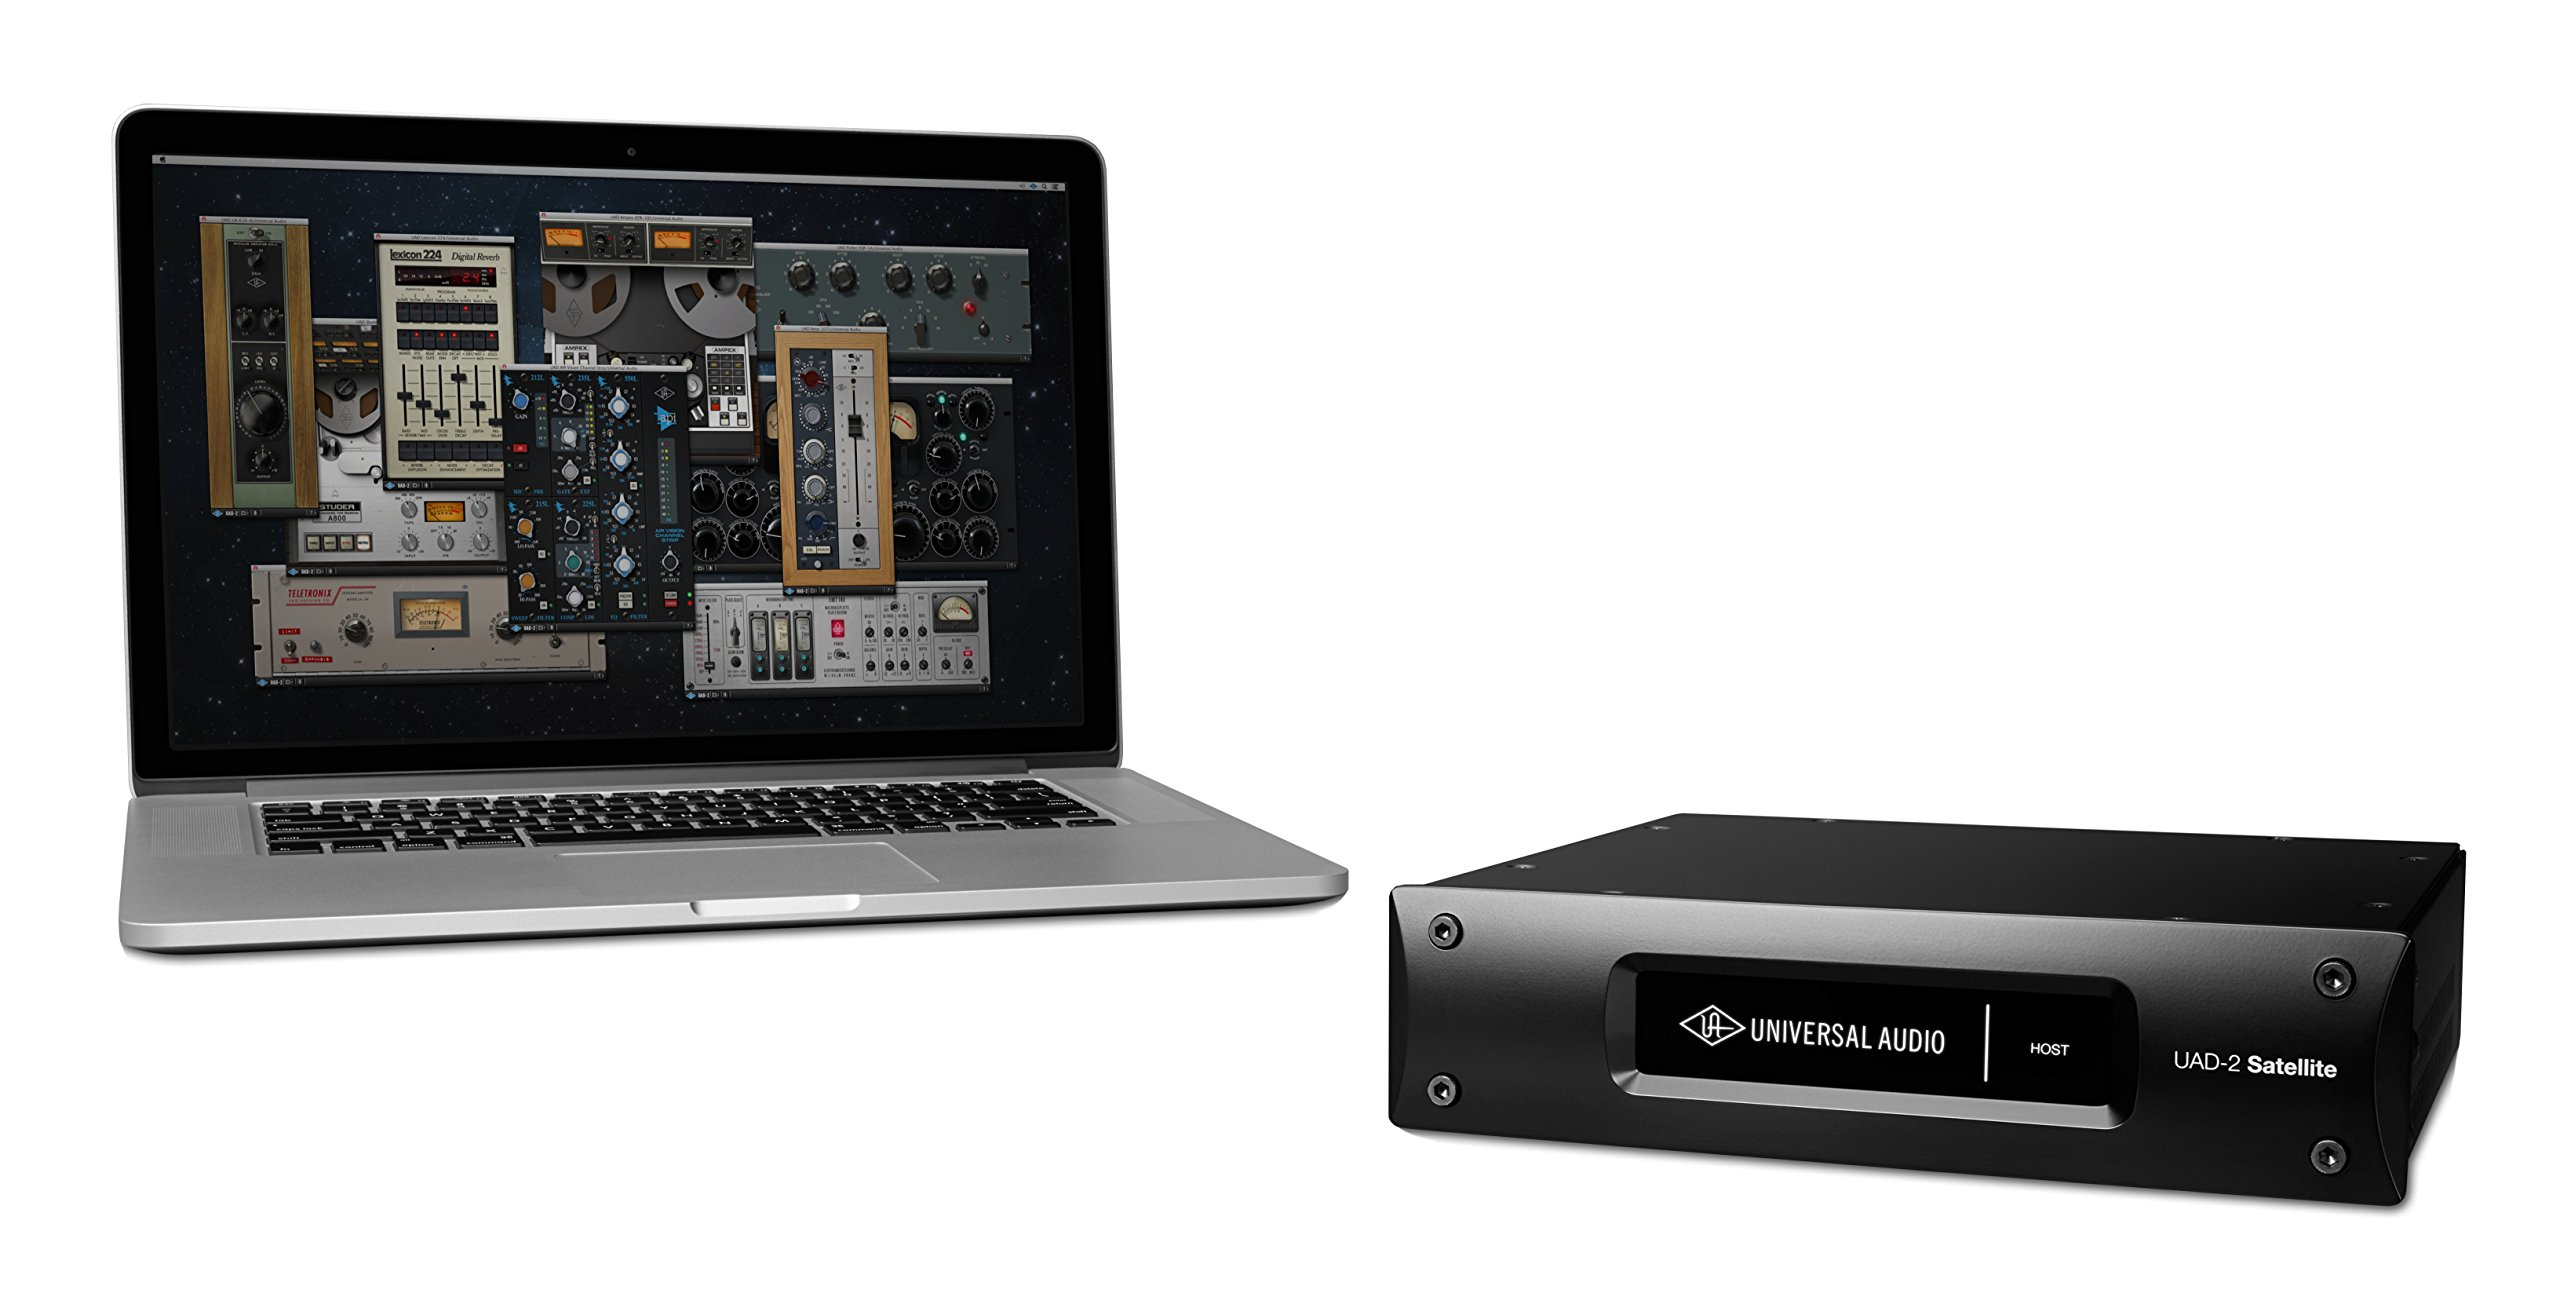 Universal Audio UAD-2 Satellite Thunderbolt - OCTO Core DSP Accelerator by Universal Audio